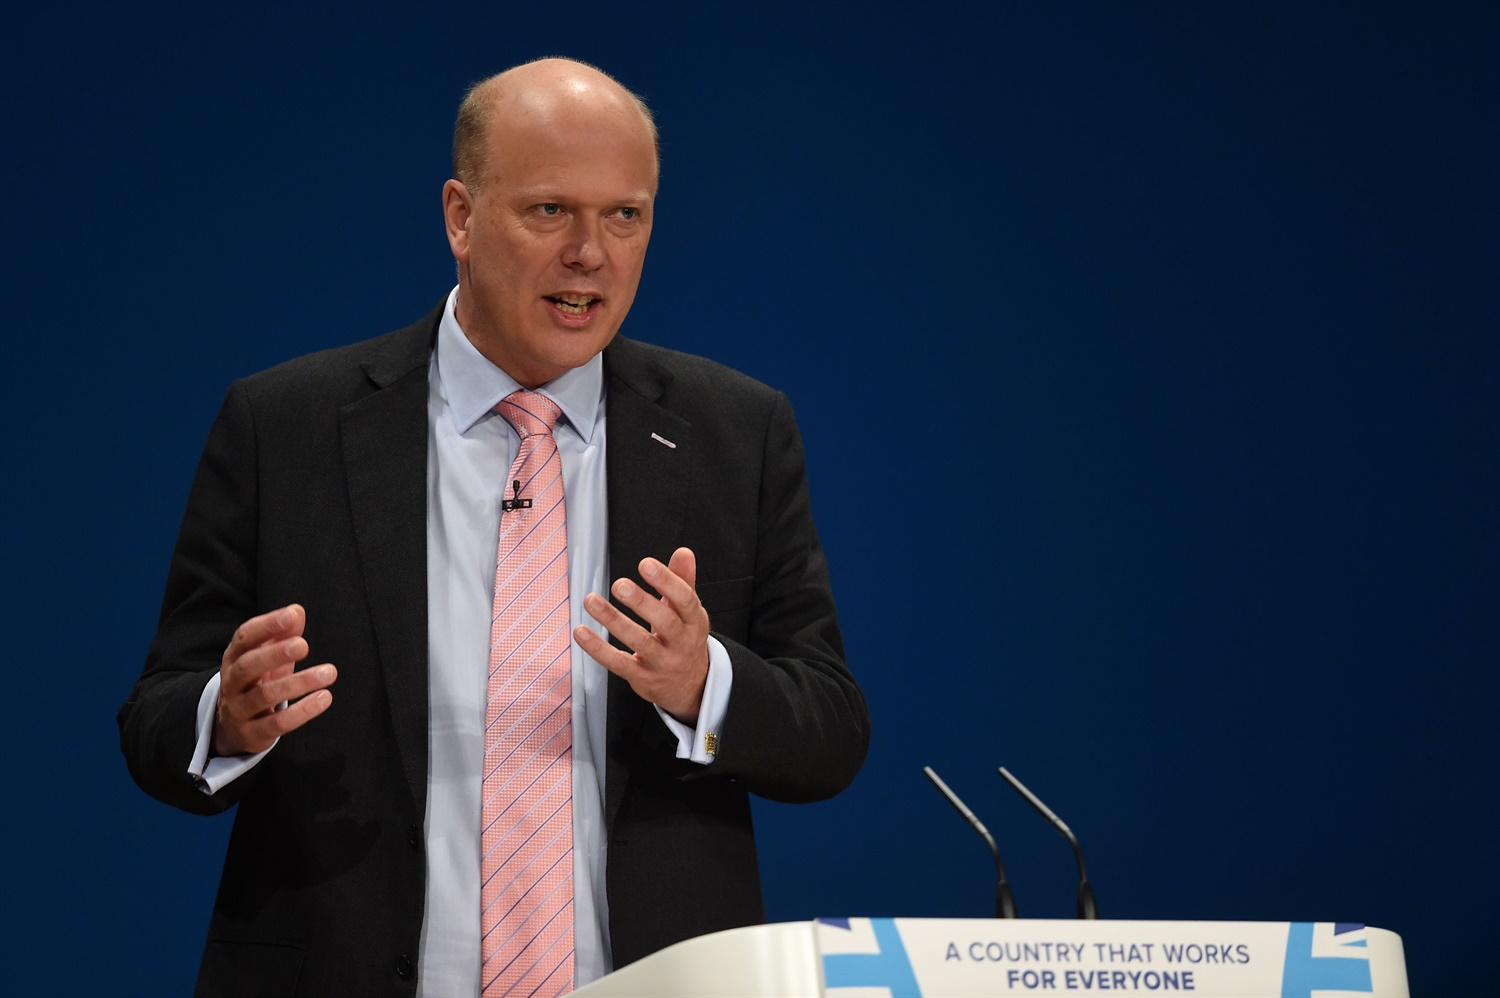 Grayling scolds operators for lack of communication on cancelled services